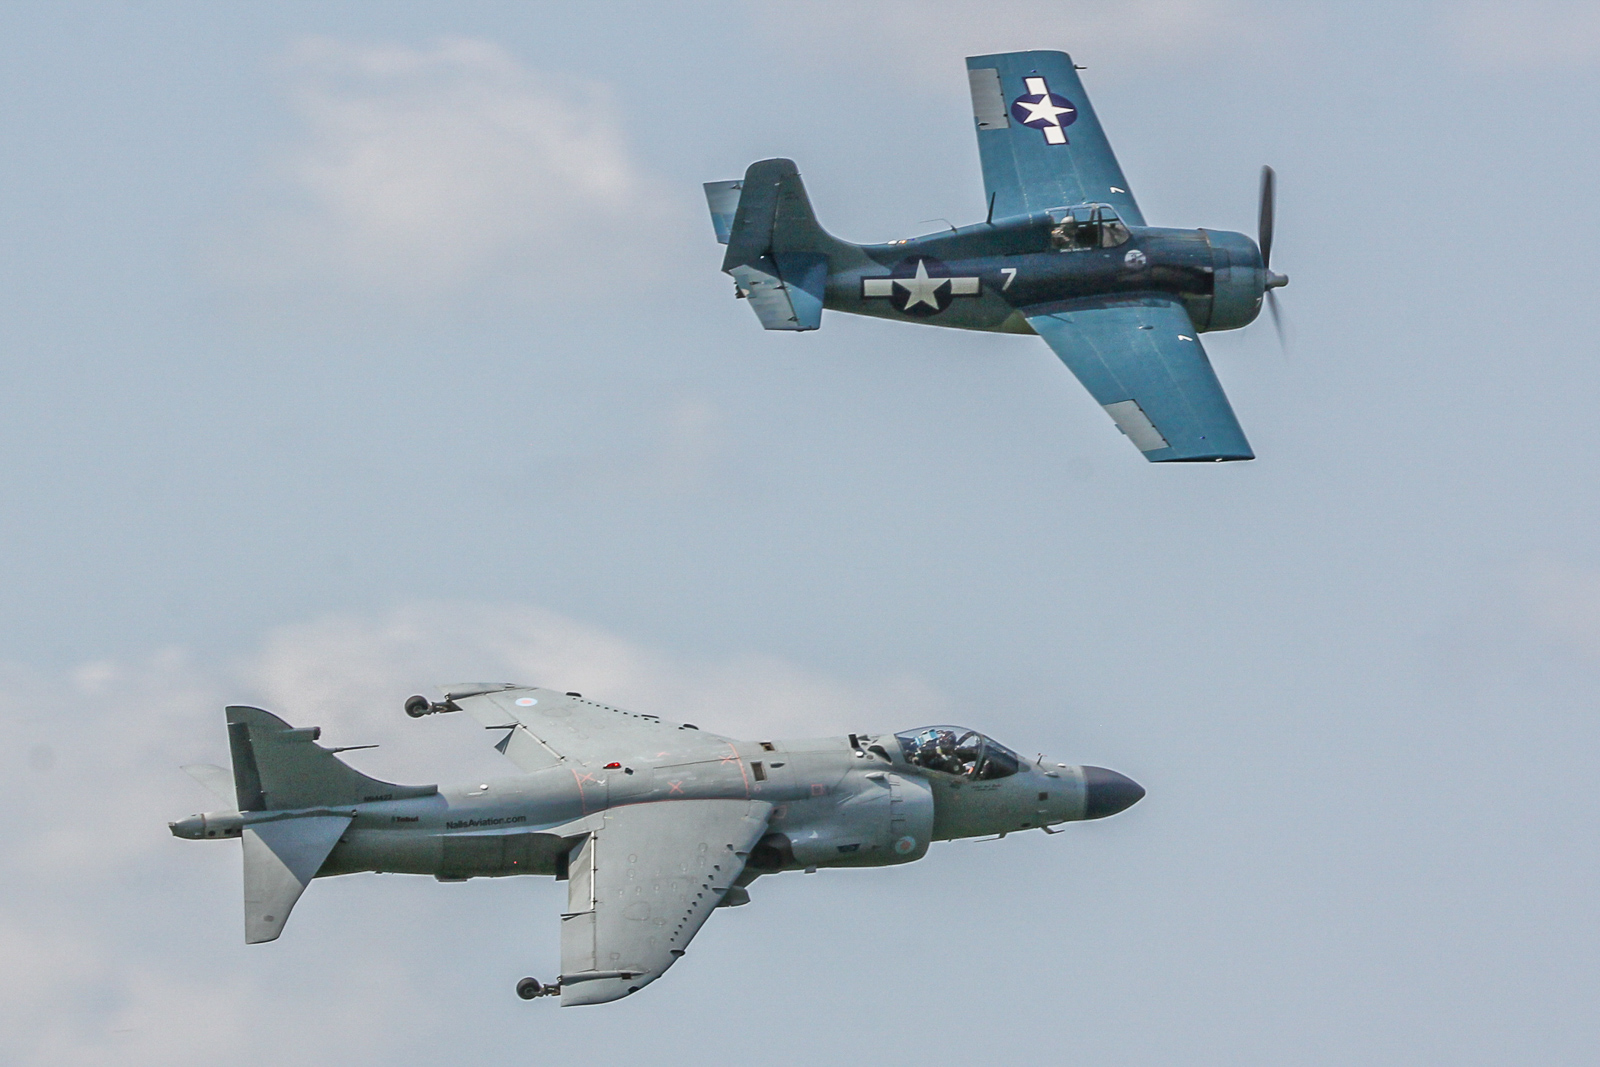 Marine Heritage Flight with Art Nalls in the Sea Harrier and Greg Shelton in the Wildcat. (photo by Tom Pawlesh)